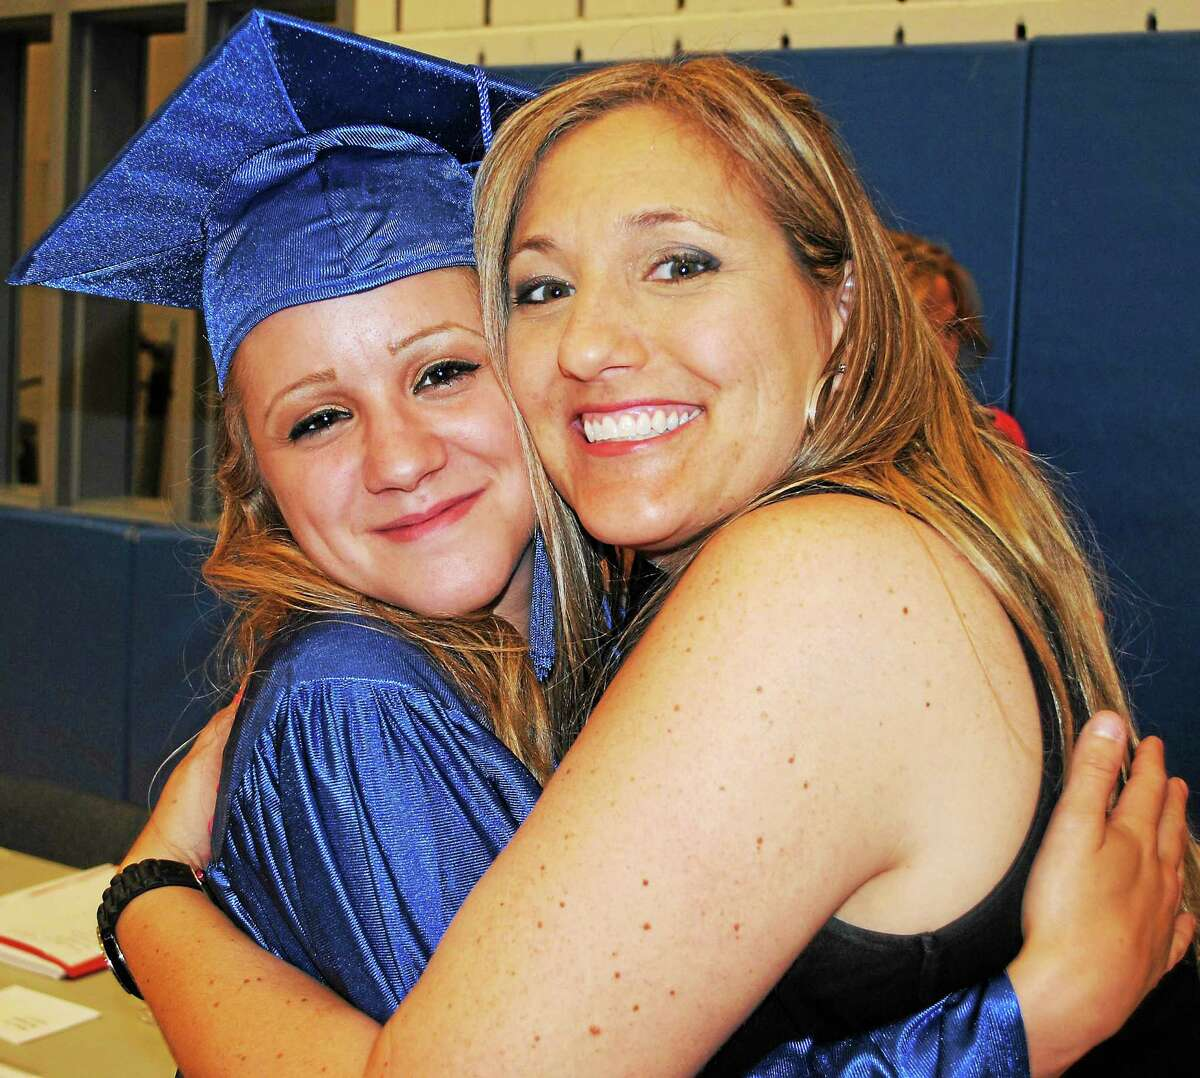 Viktoria Sundqvist - The Middletown Press English teacher Cathleen Cody, left, hugs student Chelsea A. Gauthier before heading into Middletown Adult Education's graduation ceremony Wednesday at Middletown High School.